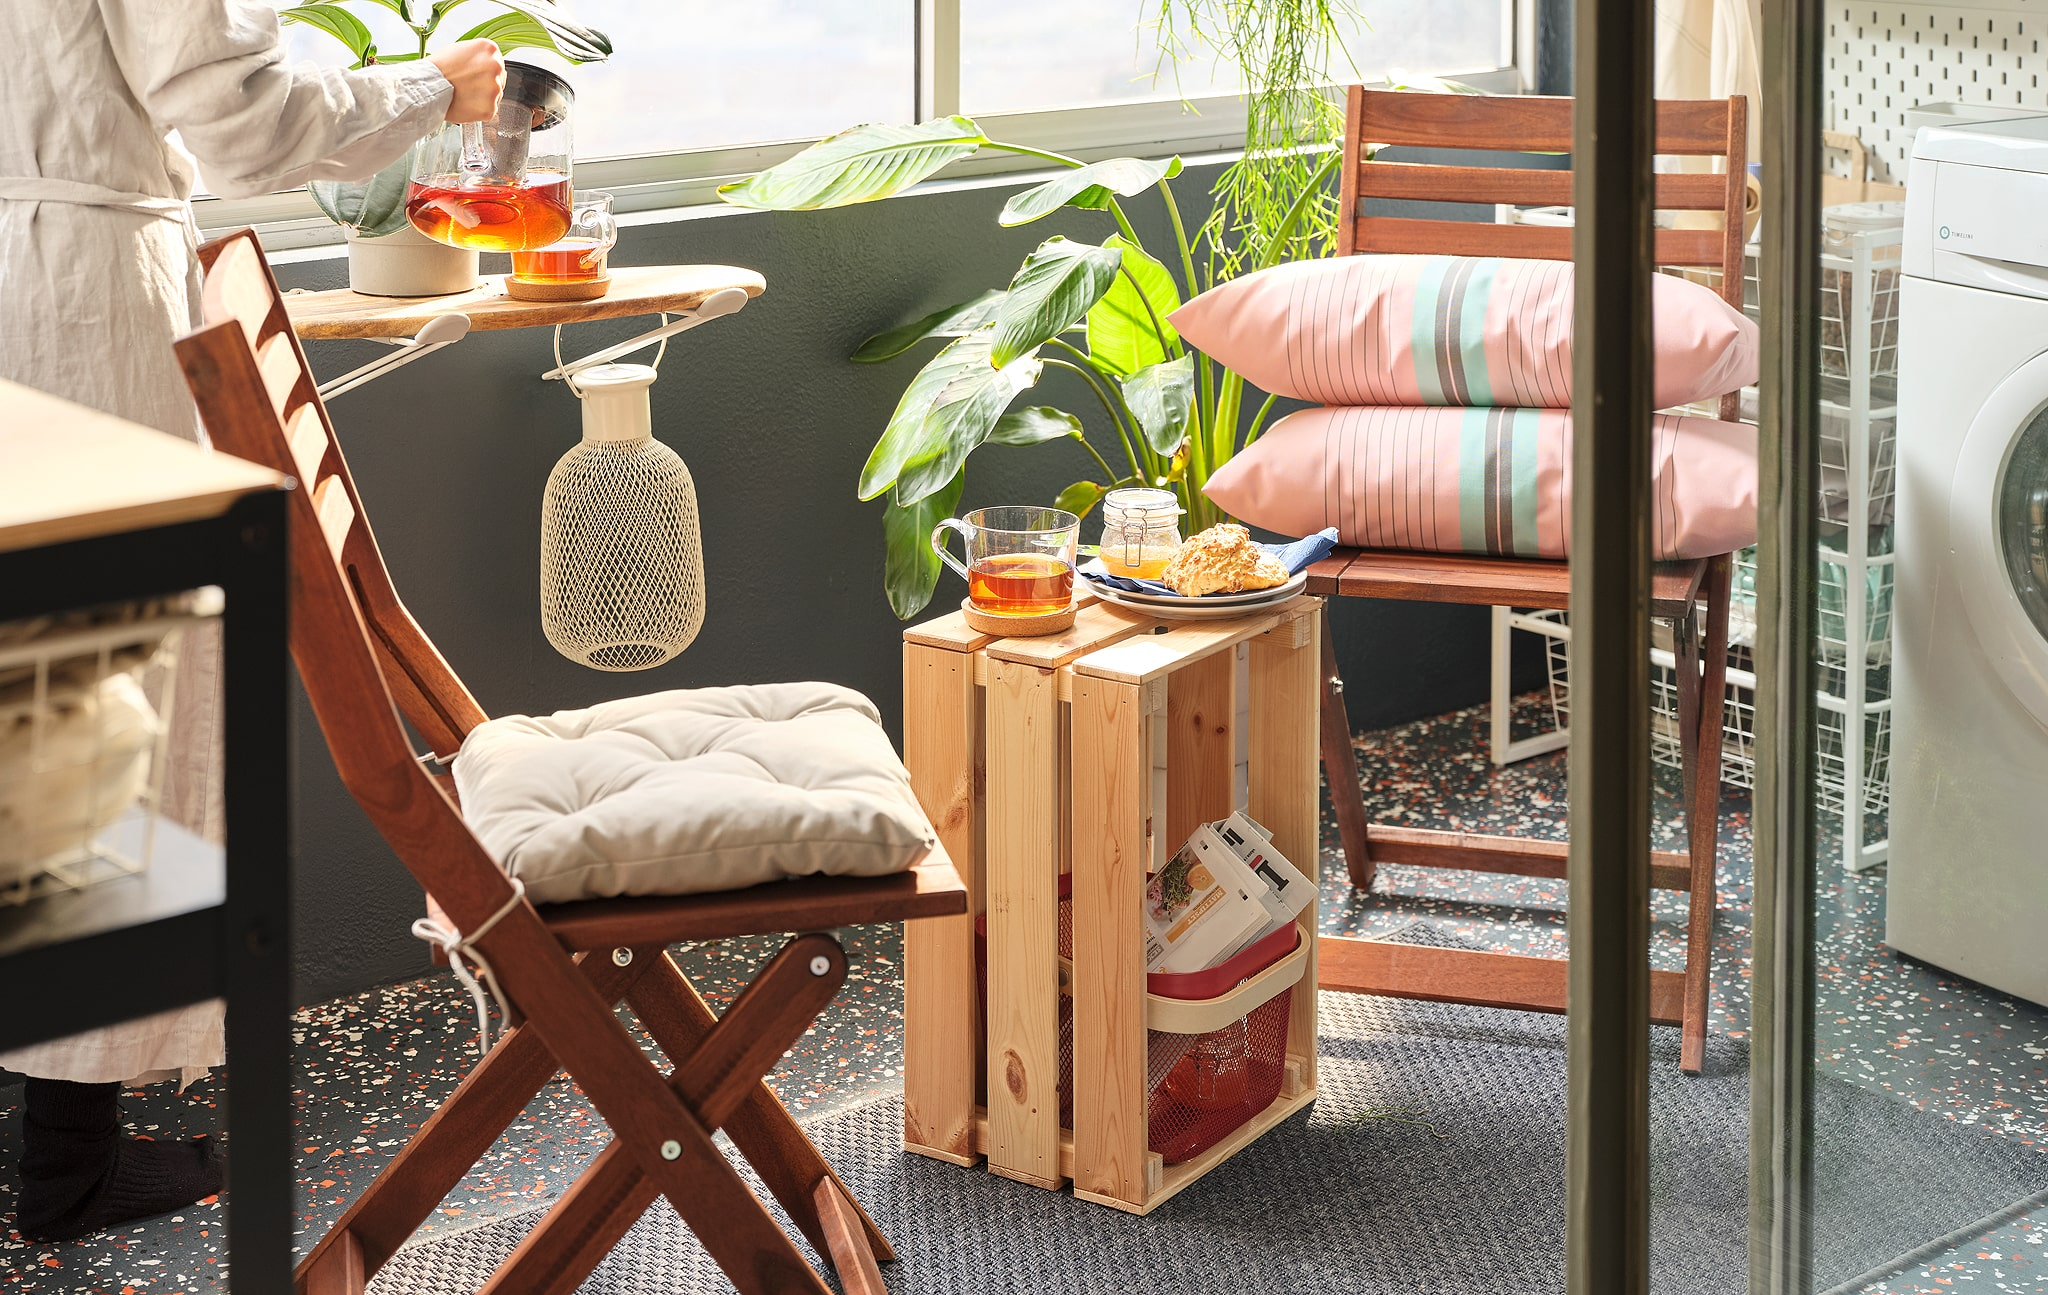 Combine storage, chores and comfort on your balcony - IKEA